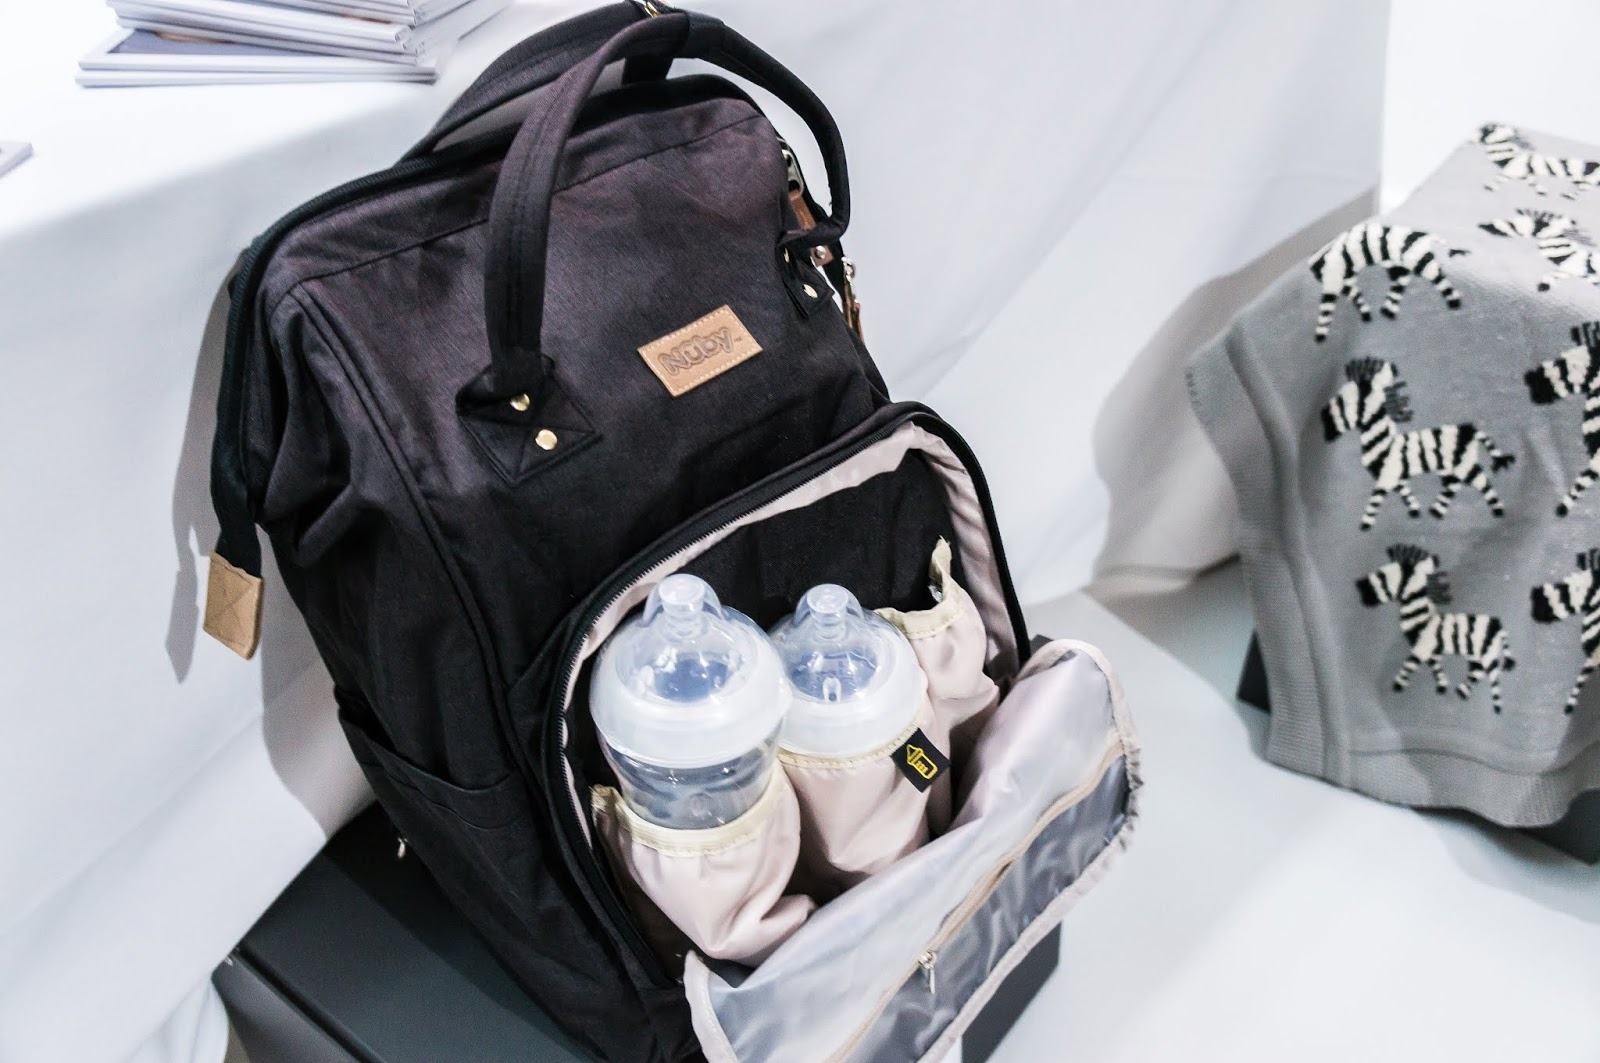 black changing bag backpack containing baby bottles on display against white background at nuby big reveal event